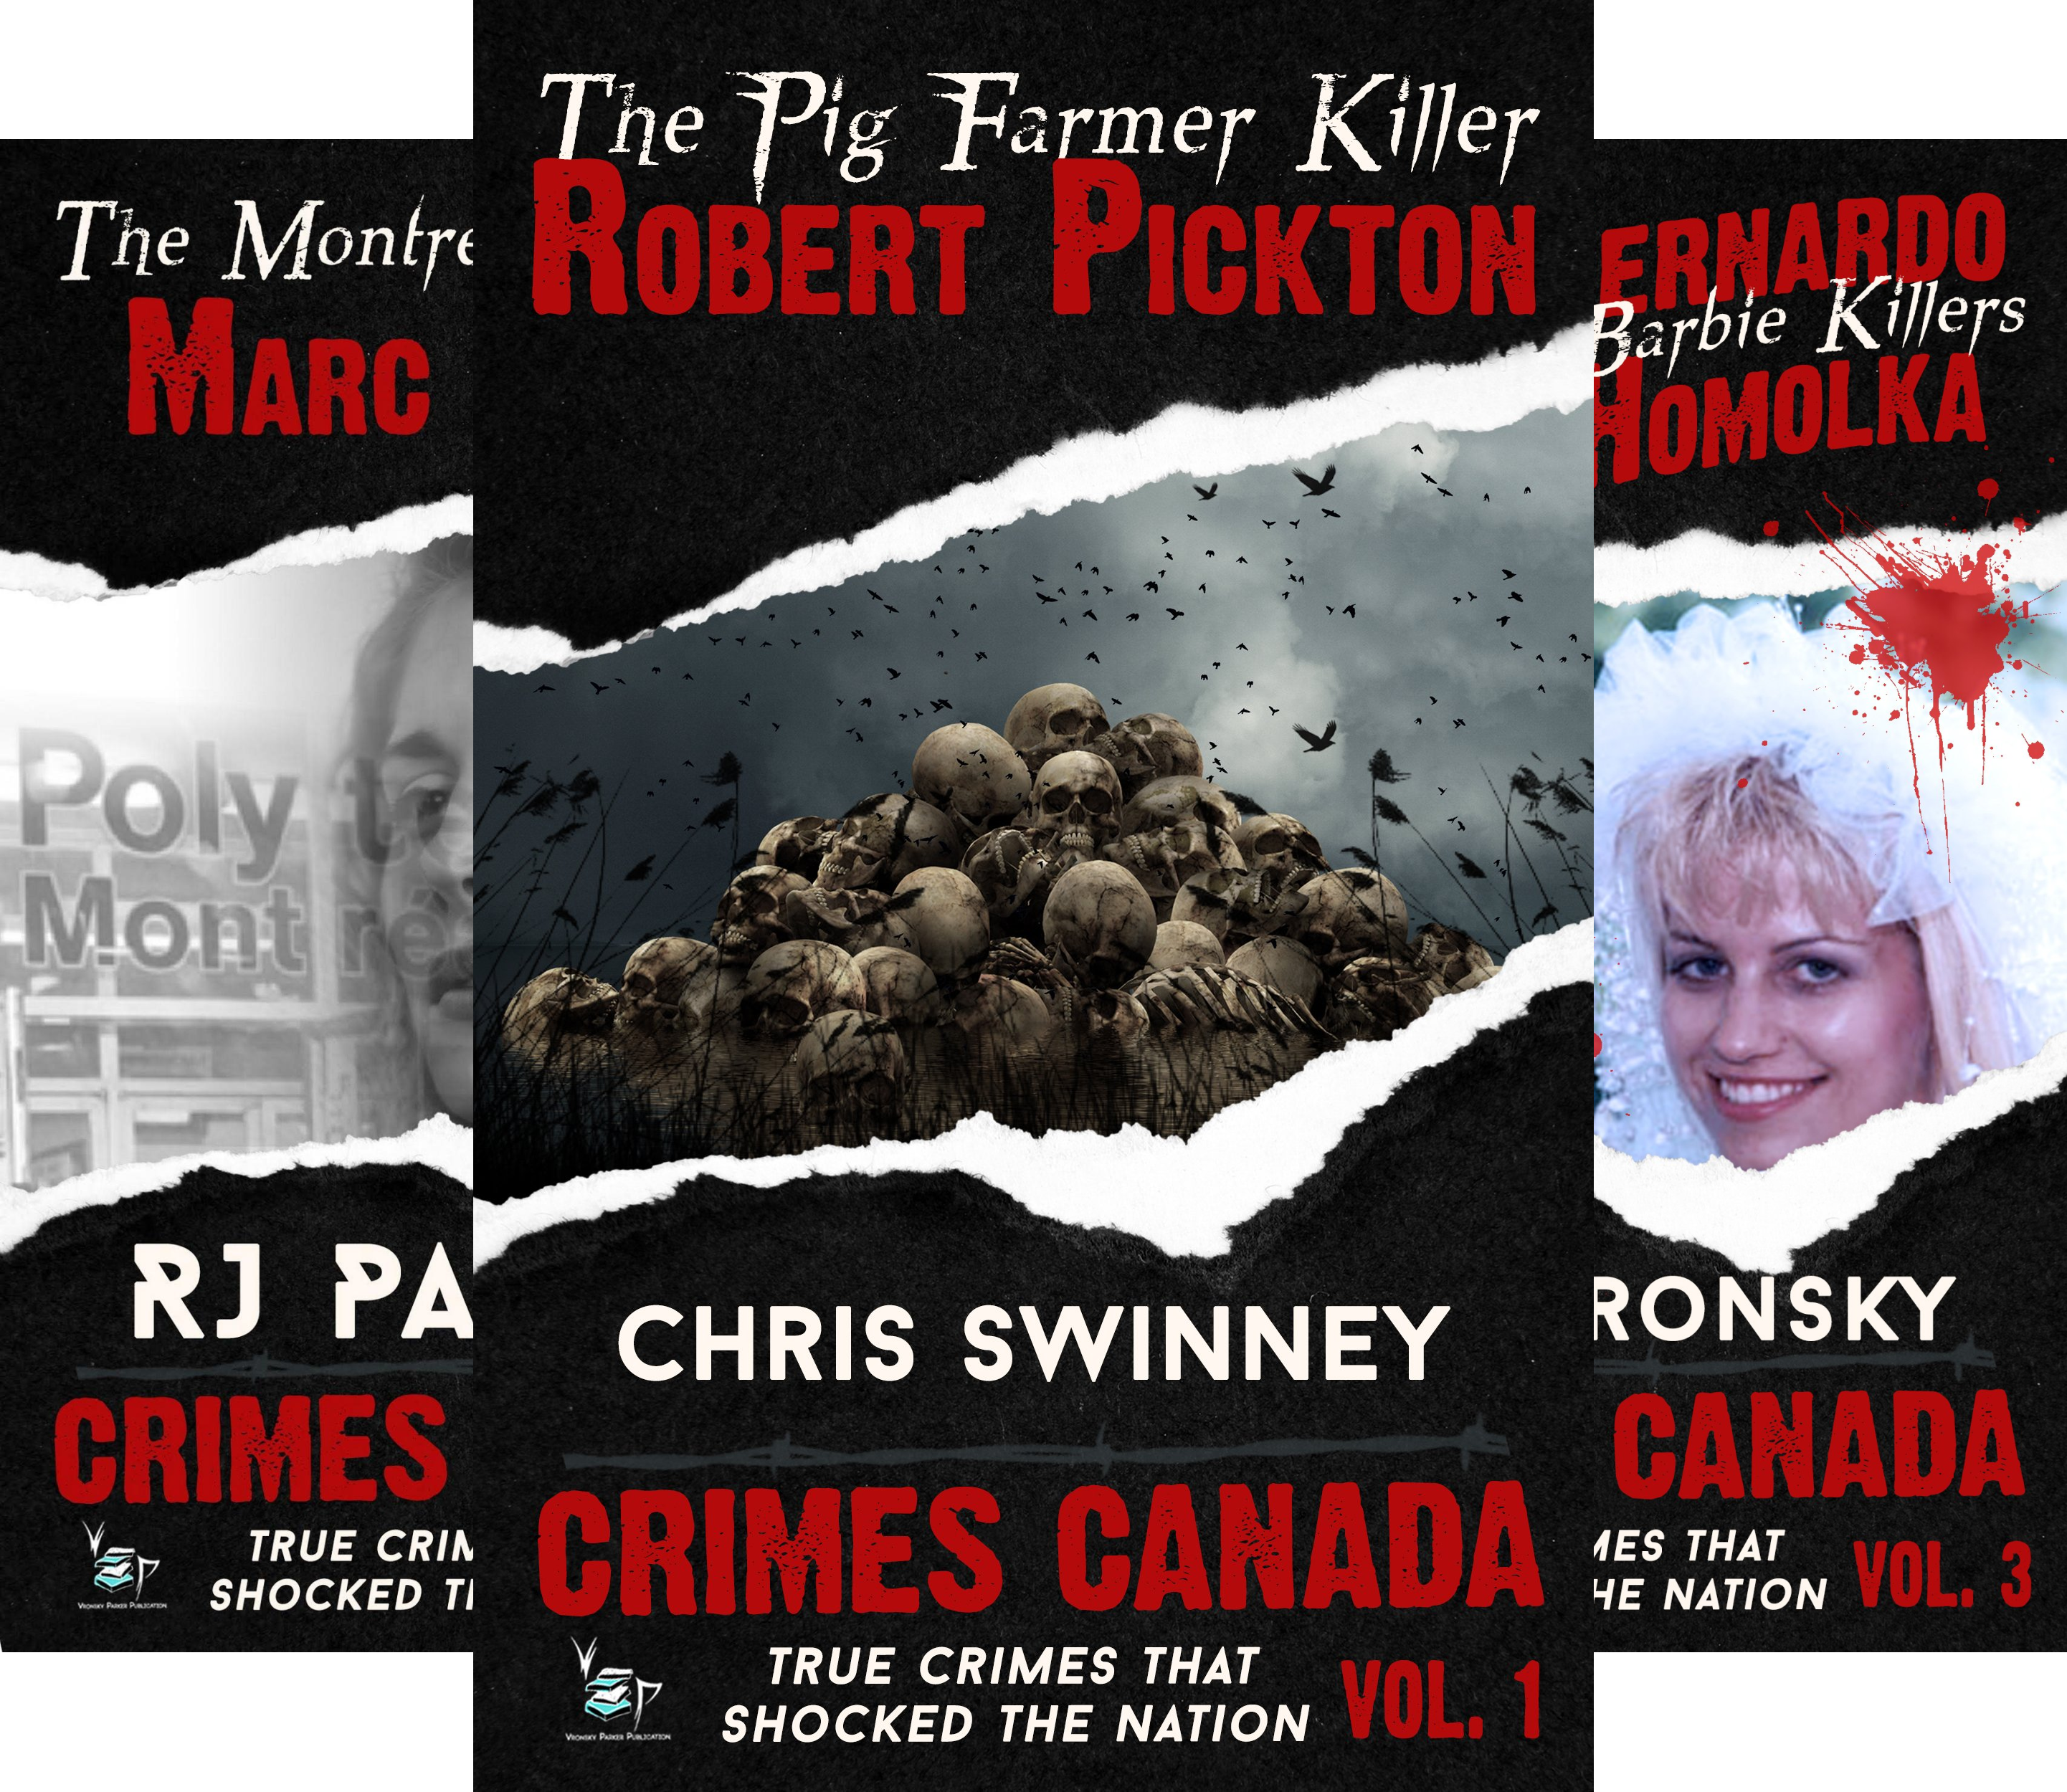 Crimes Canada: True Crimes That Shocked the Nation (17 Book Series)